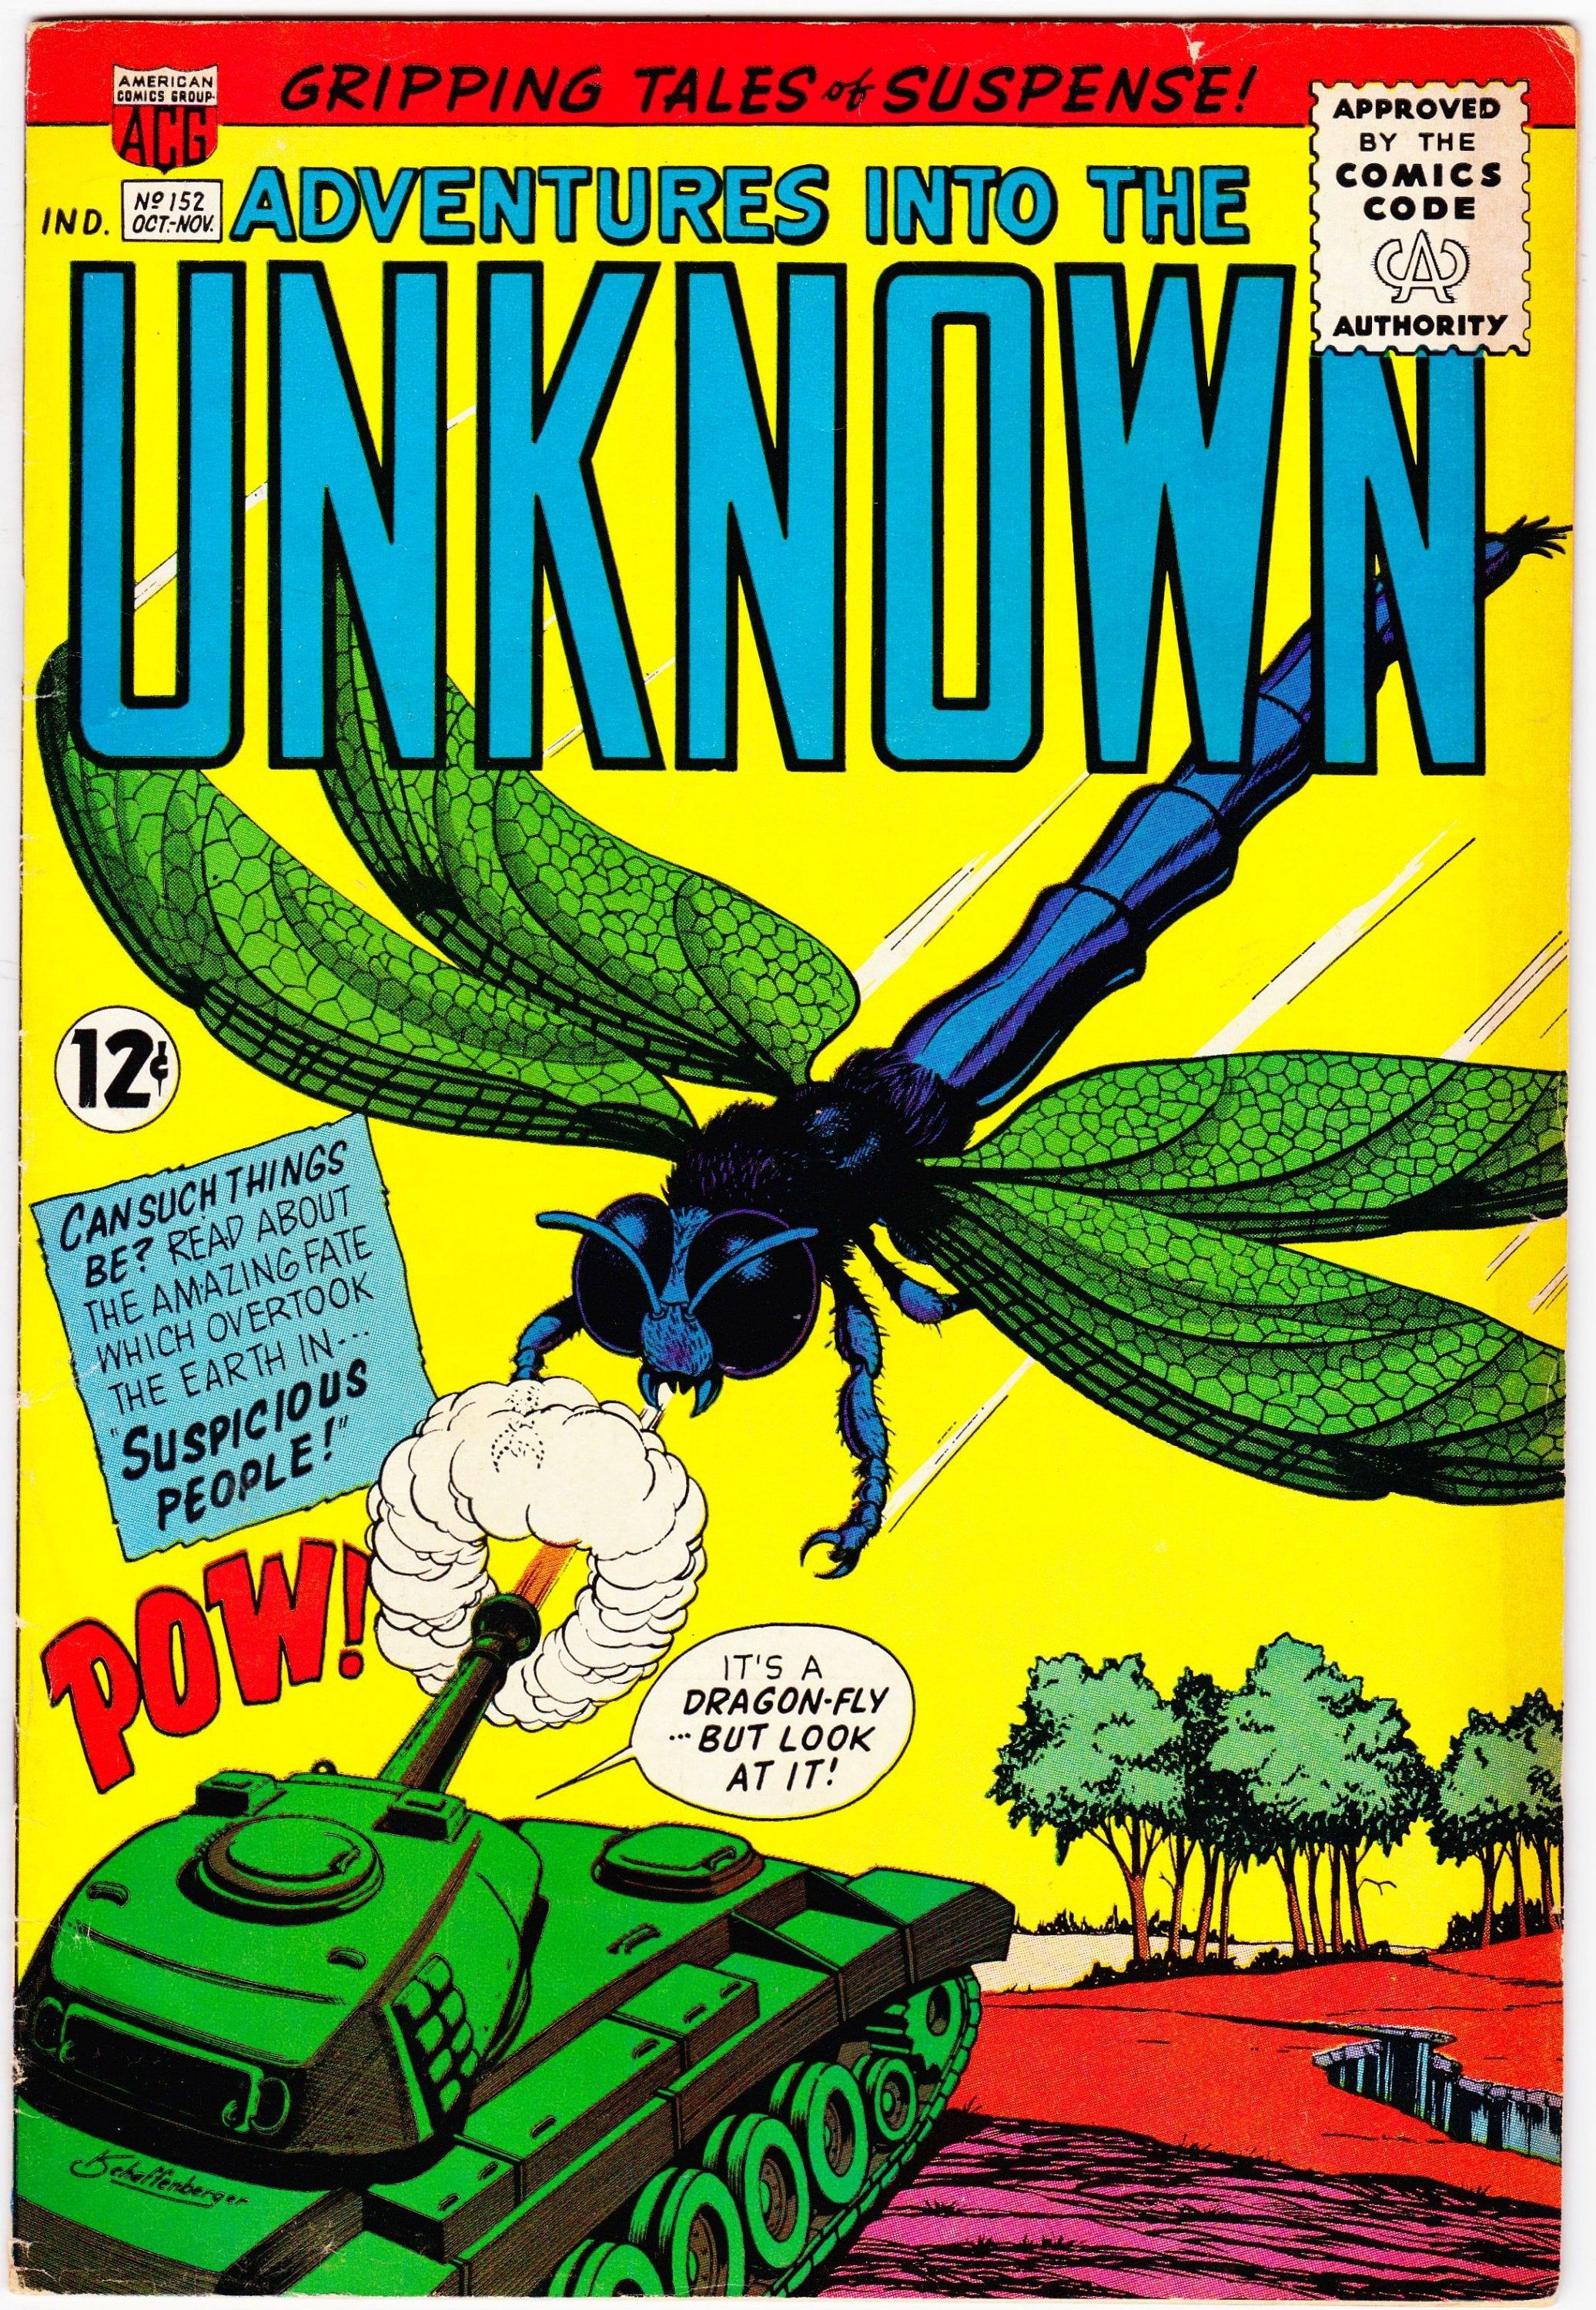 Adventures into the unknown 152 1948 series november